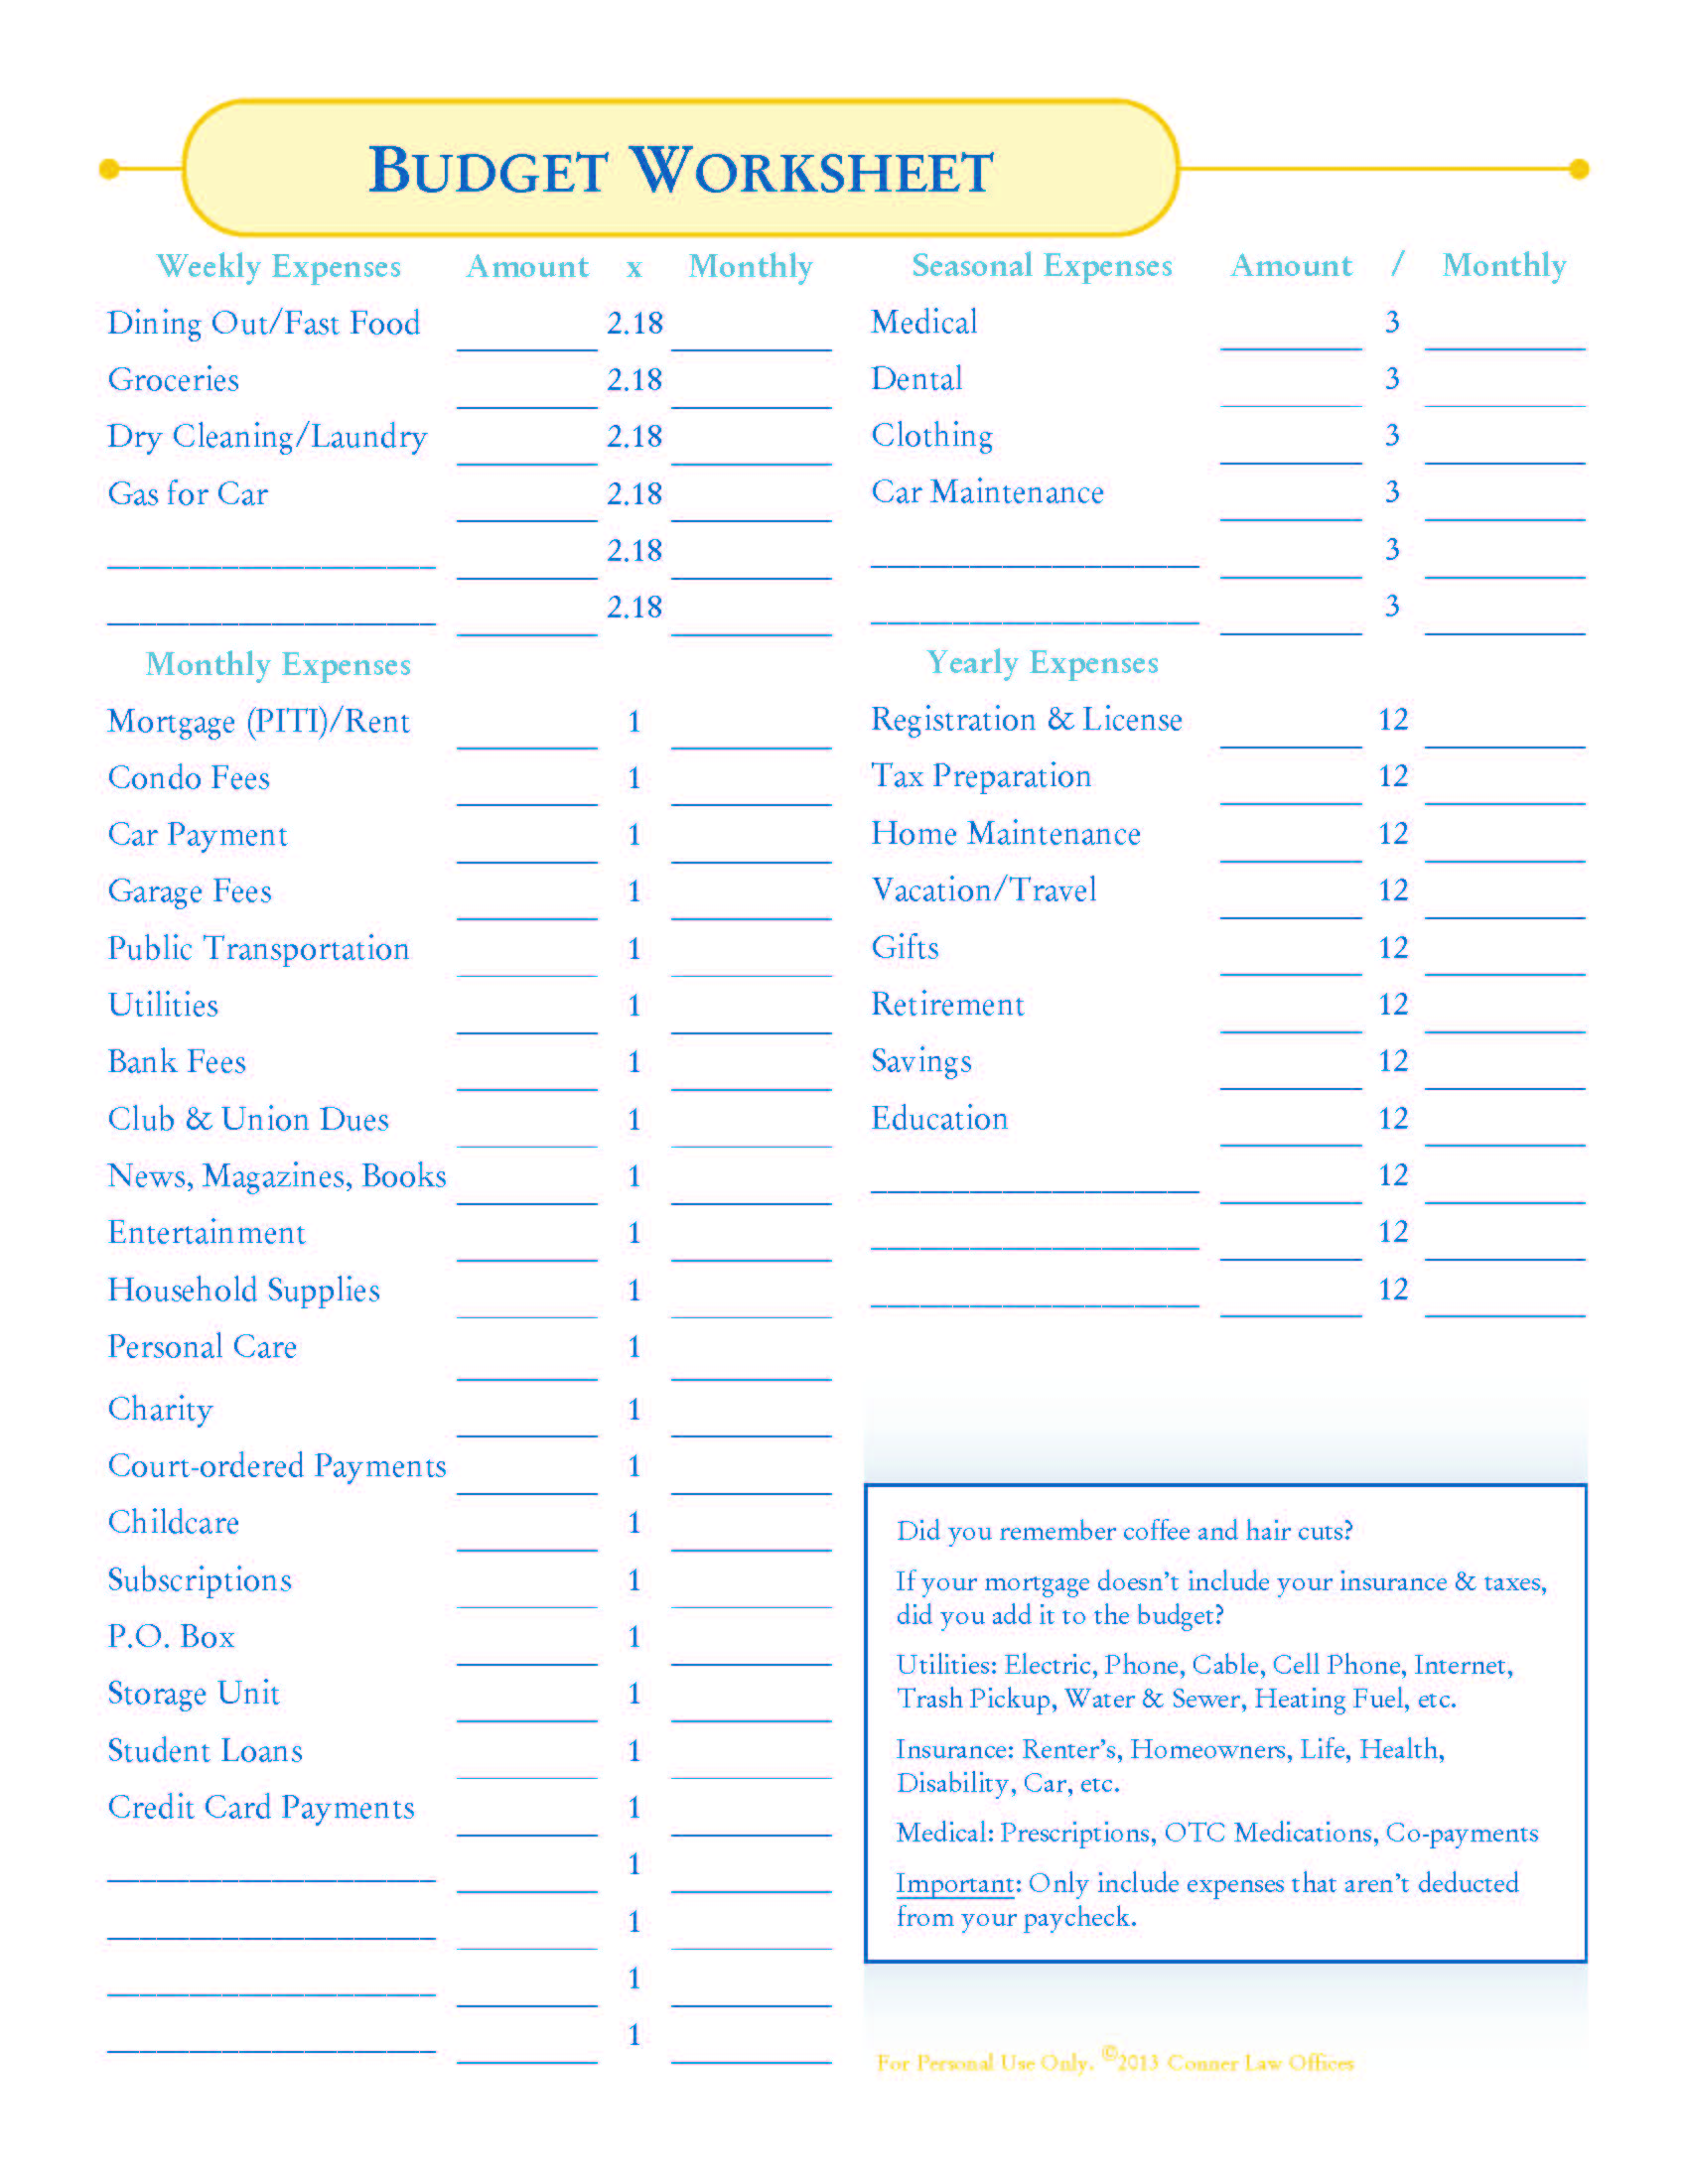 Free Worksheet How To Create A Budget Worksheet bankruptcy how to make a budget conner law blog worksheet